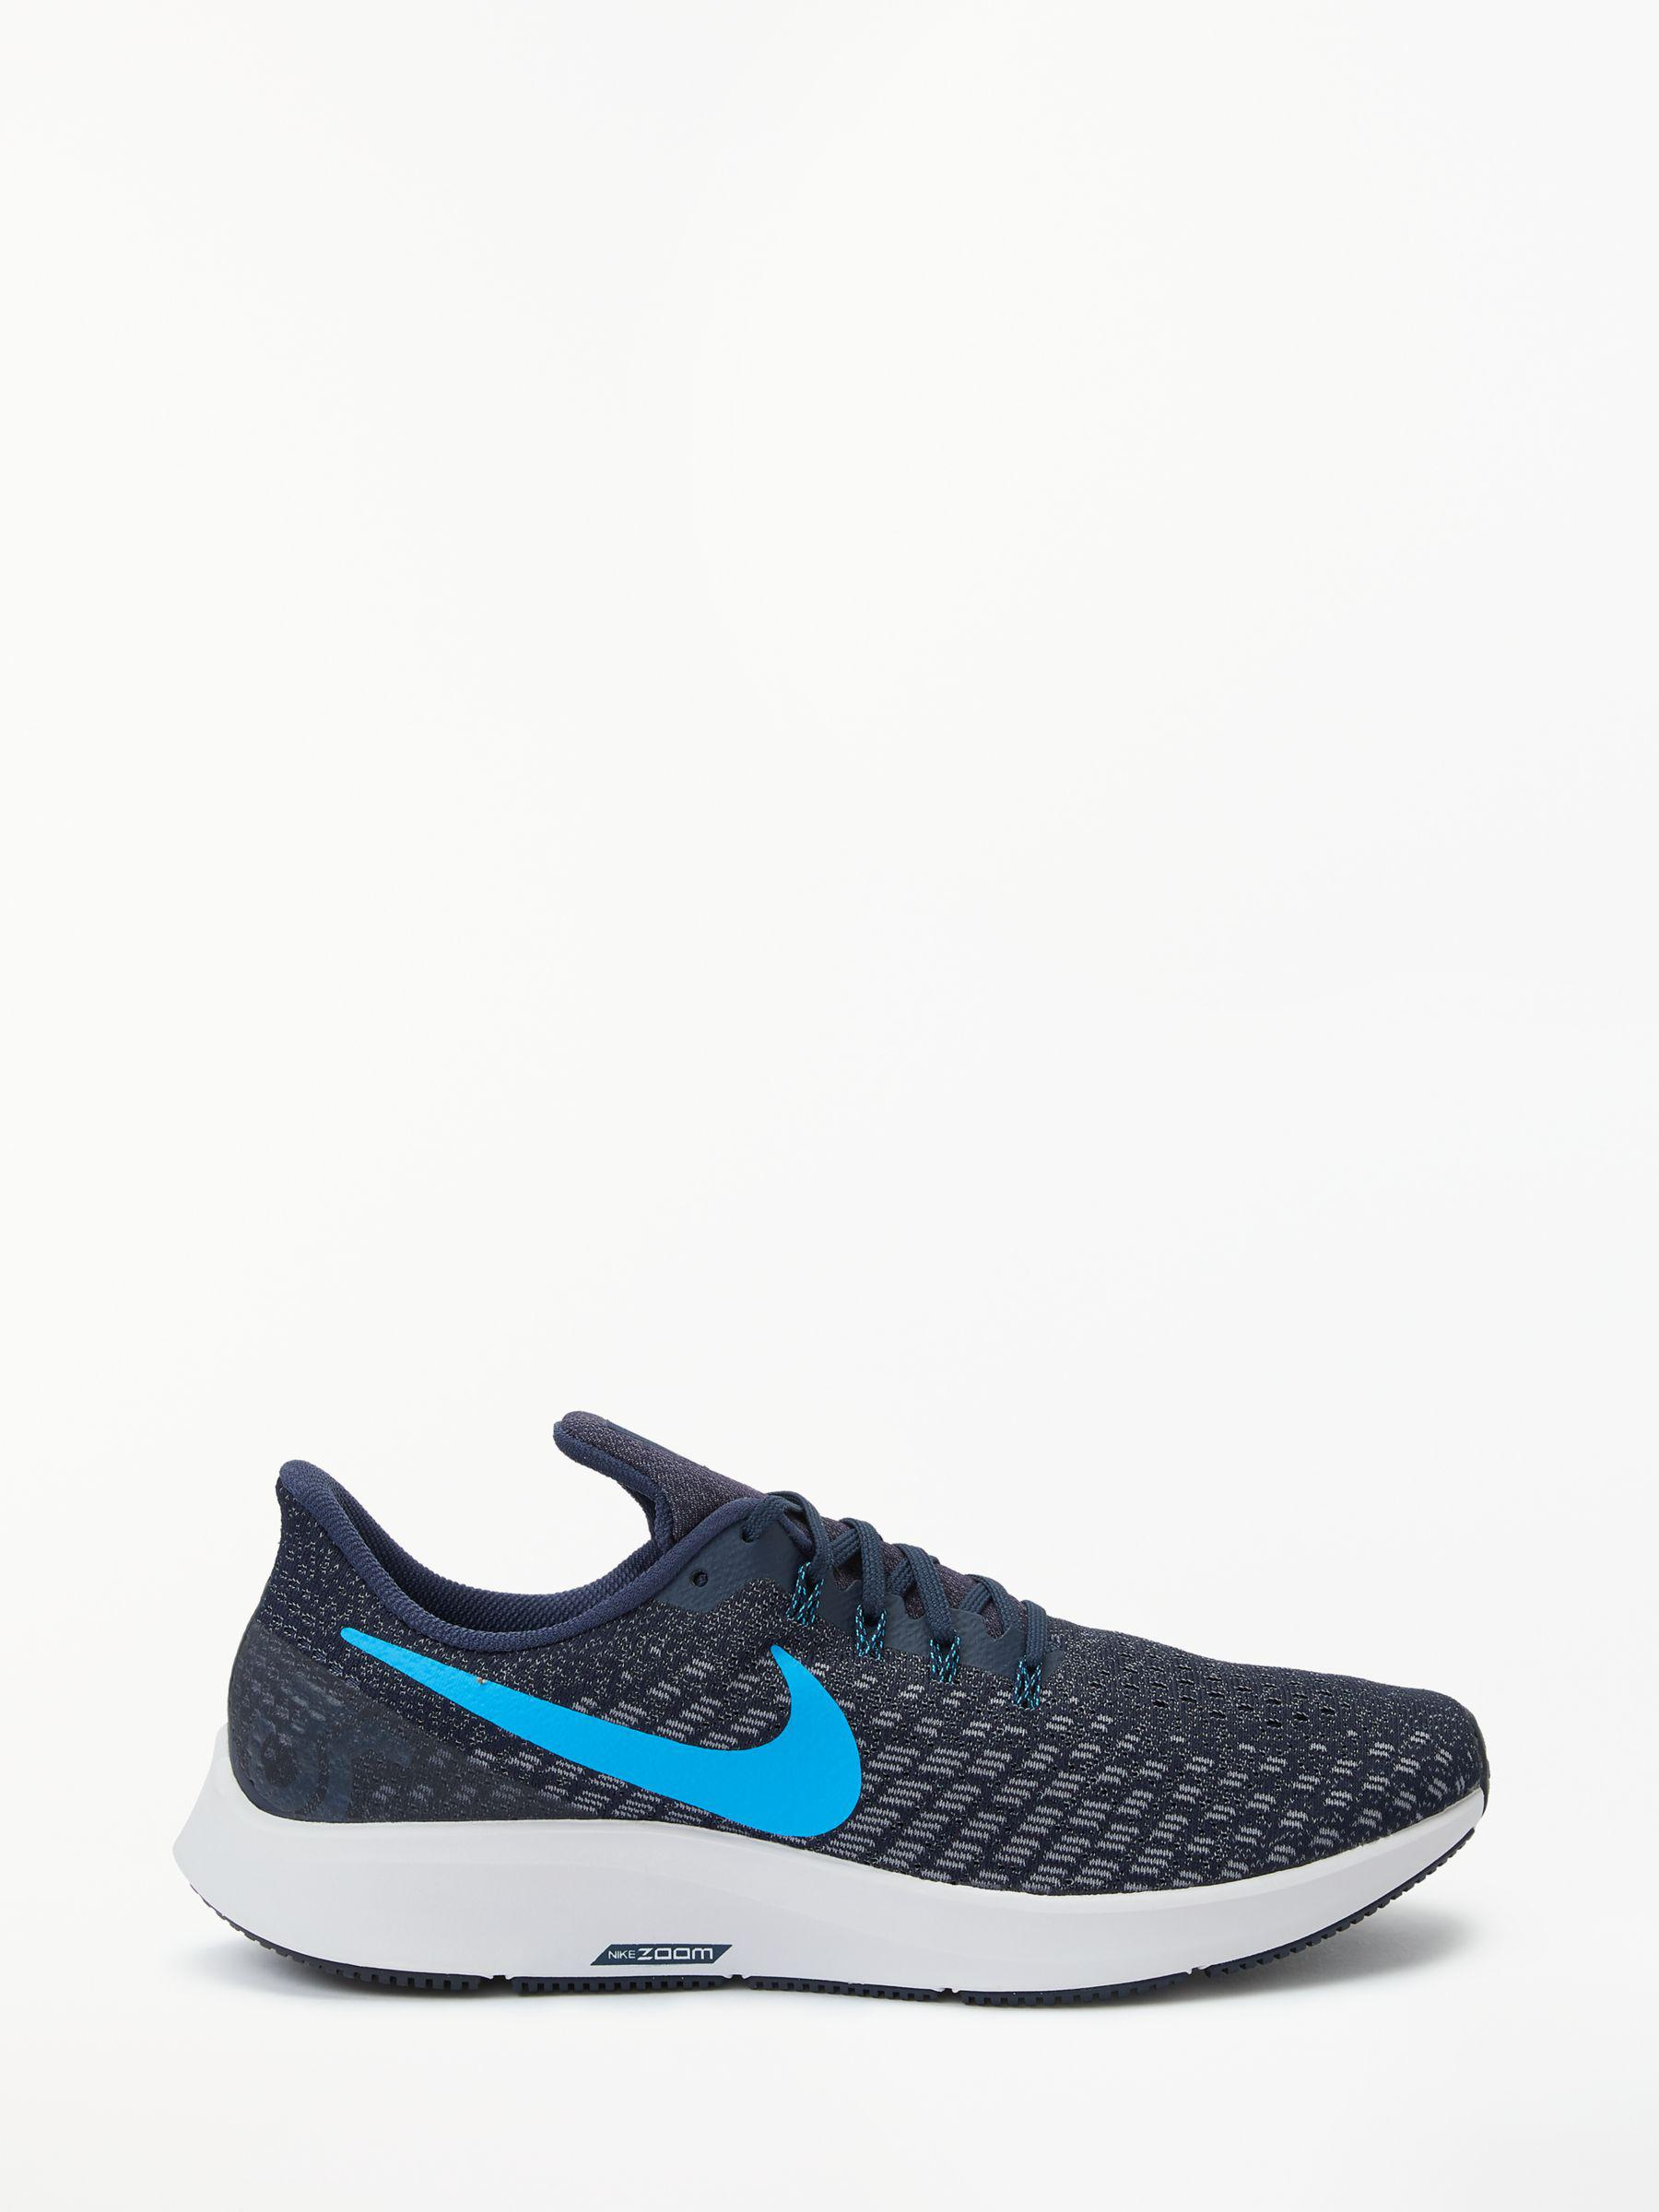 wholesale dealer 1df30 591a8 Nike Air Zoom Pegasus 35 Men s Running Shoes in Blue for Men - Lyst